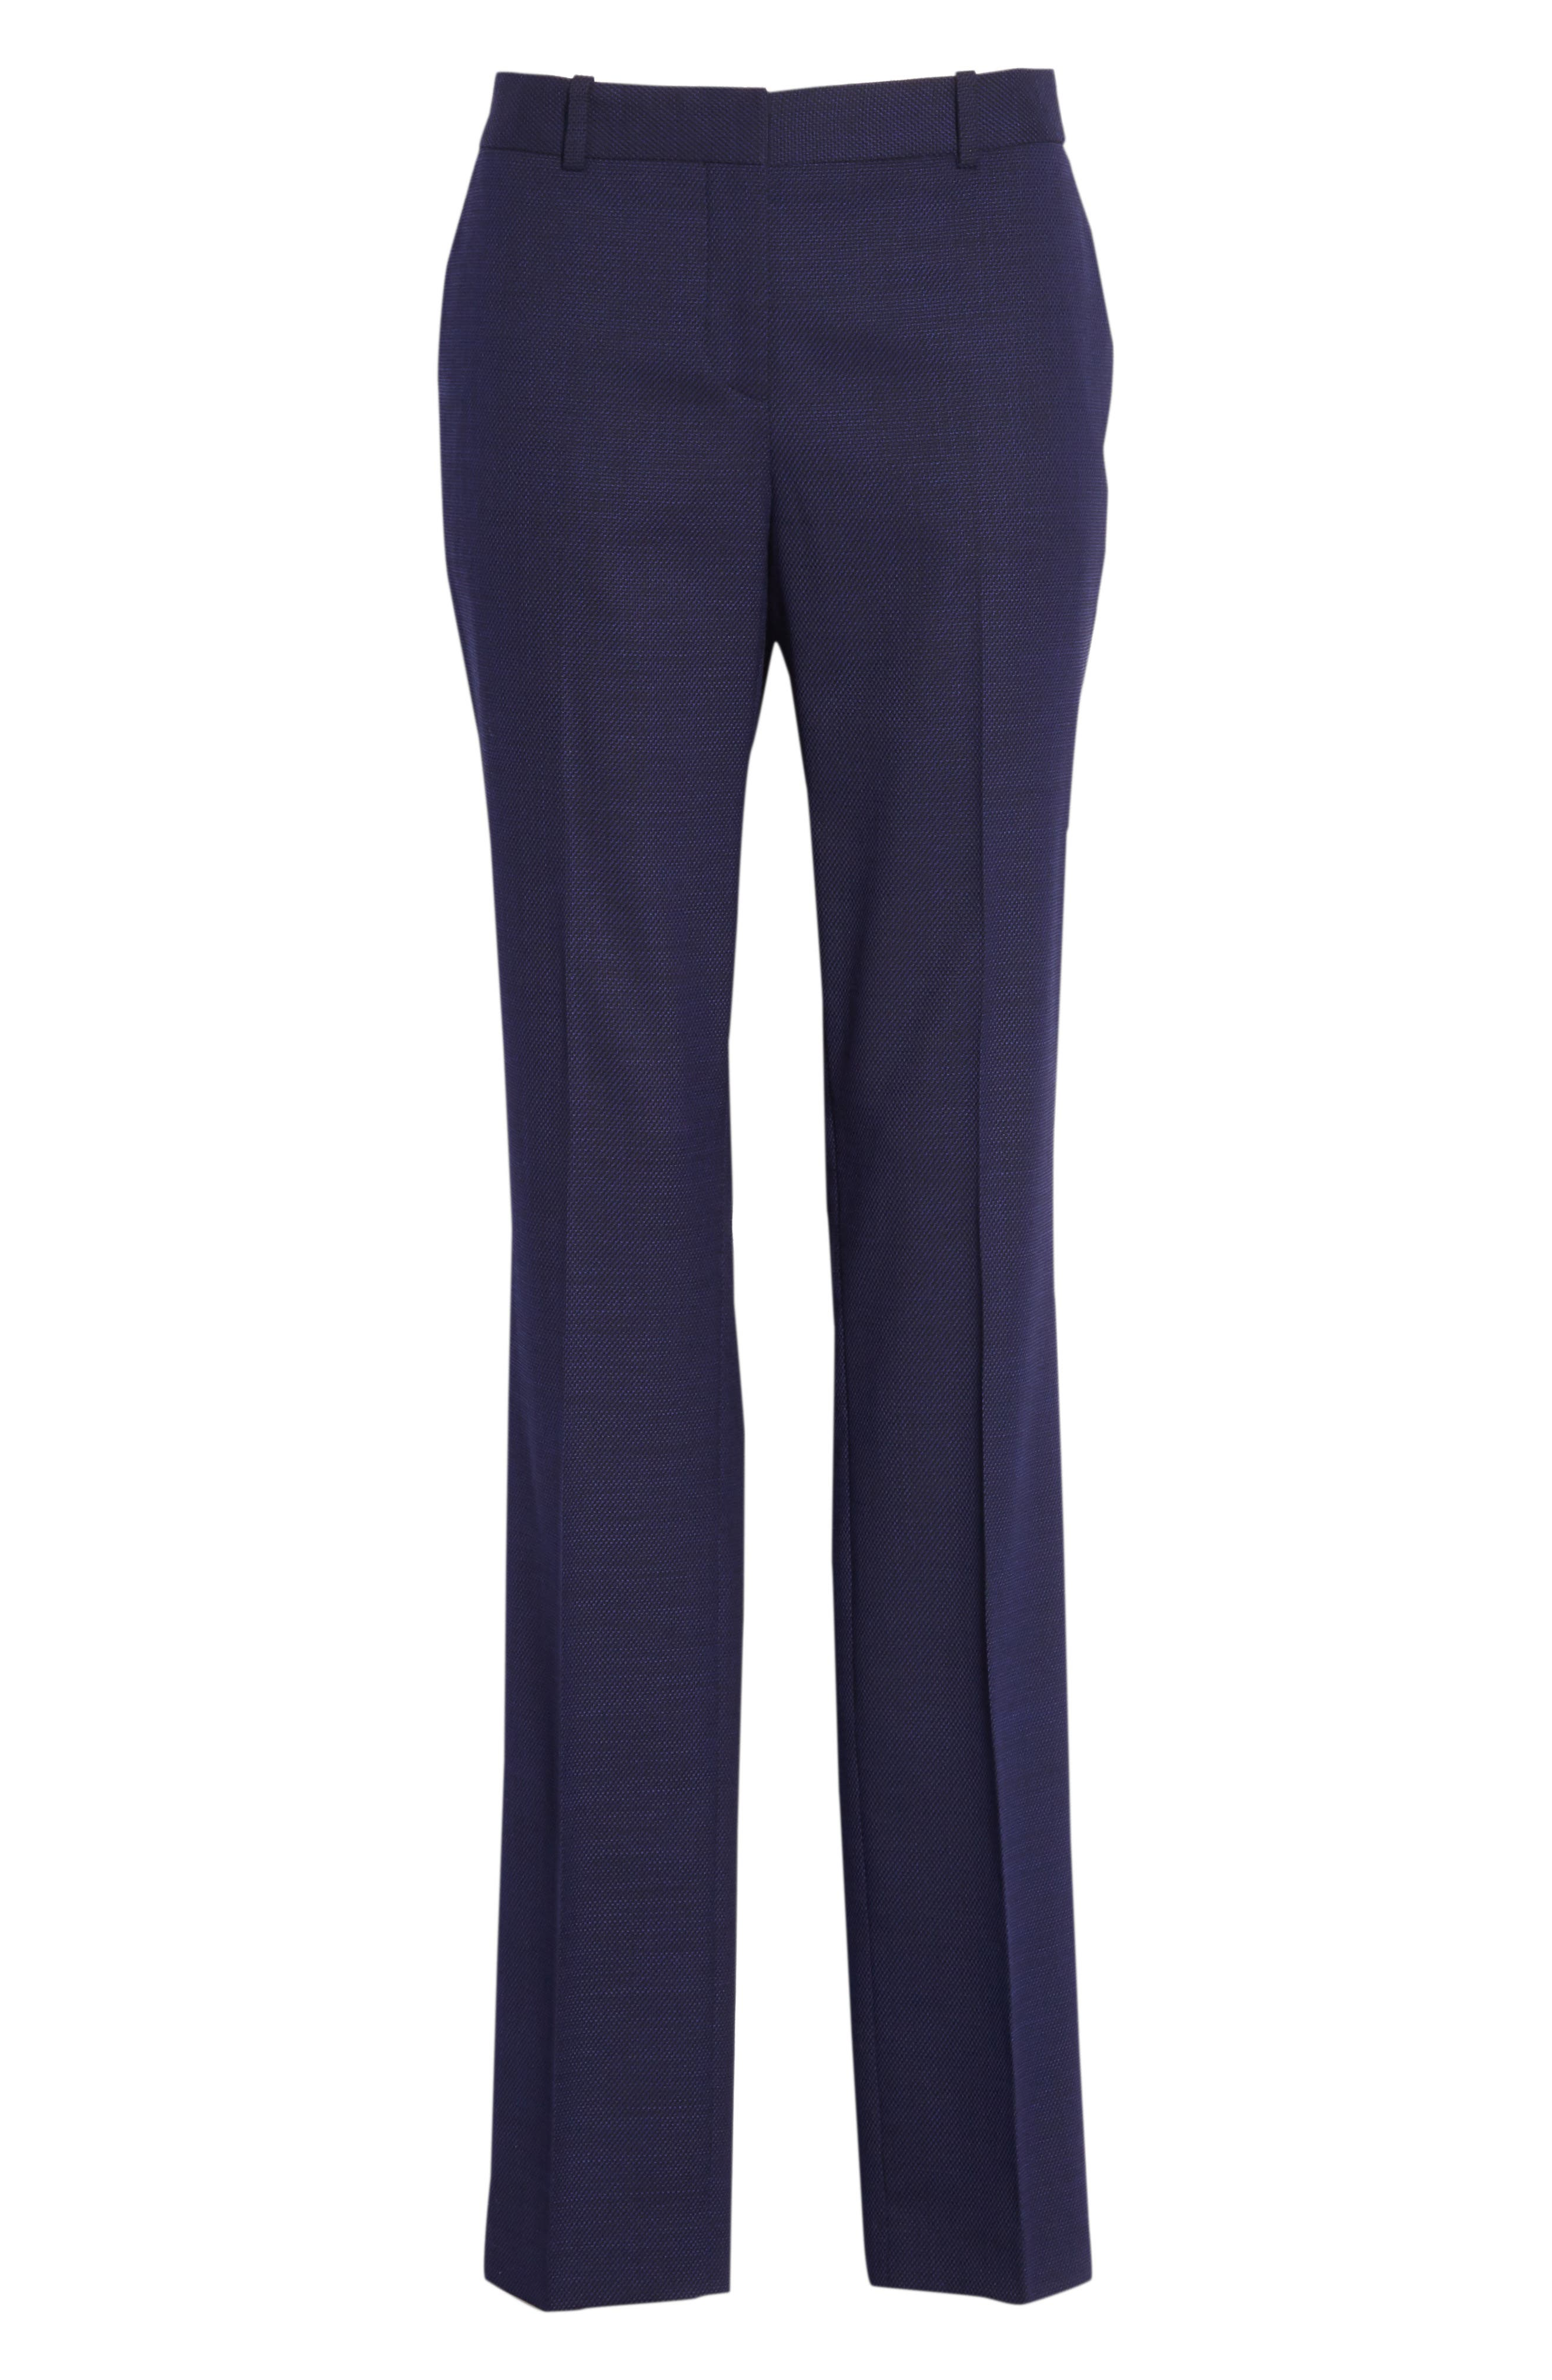 Titana Straight Leg Suit Pants,                             Alternate thumbnail 7, color,                             DEEP LILAC FANTASY